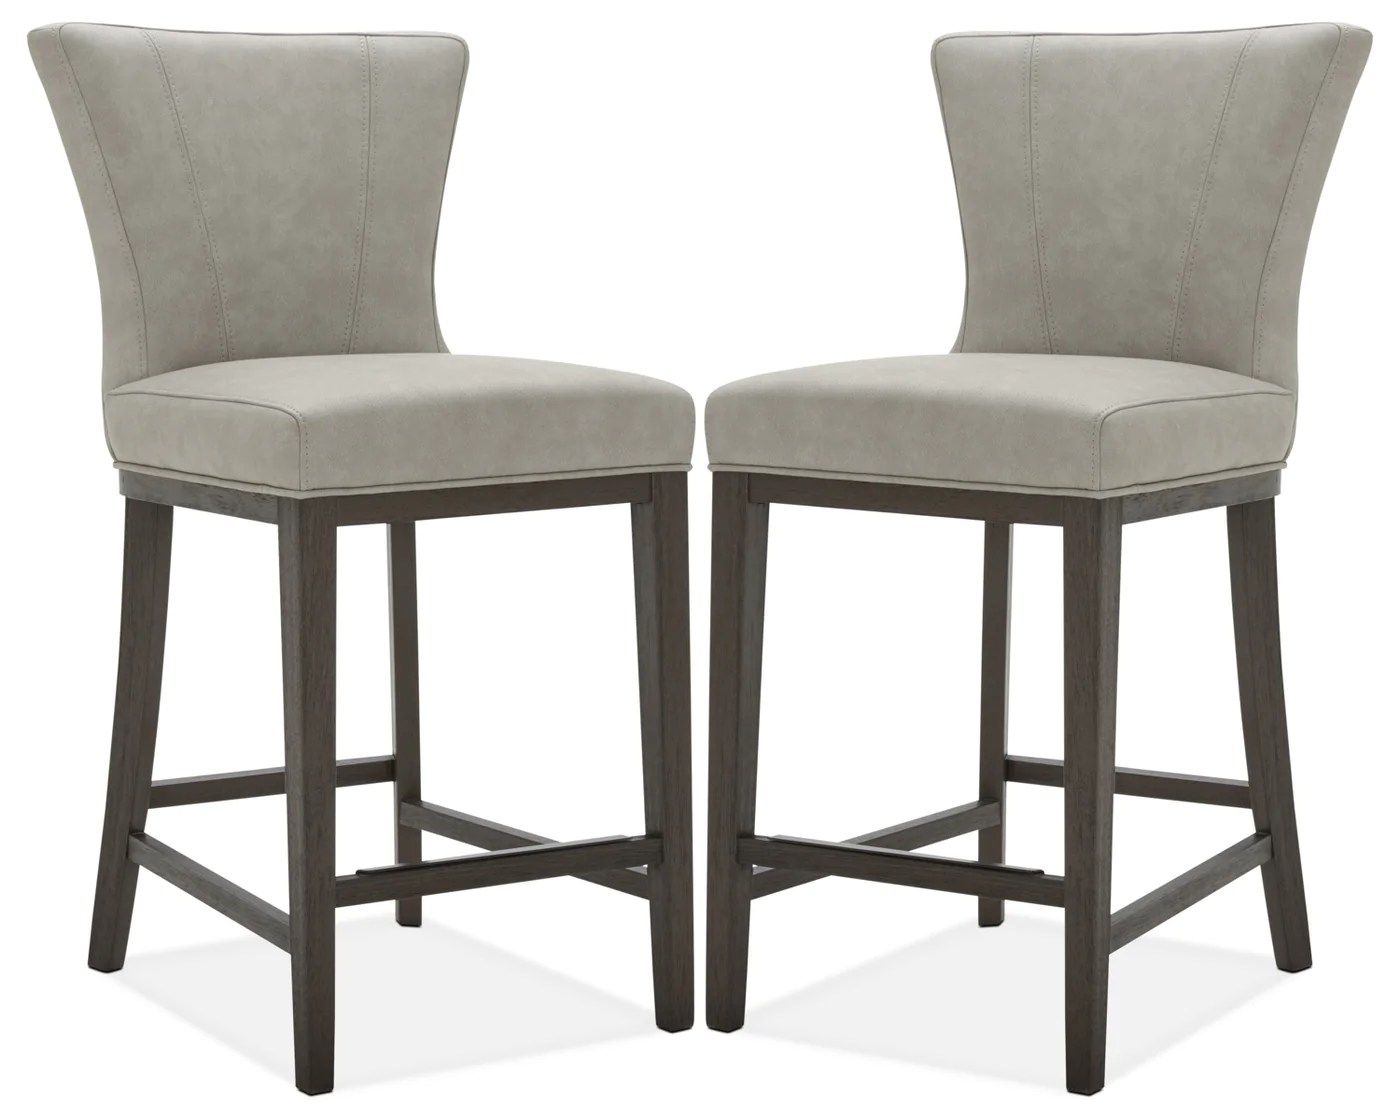 Counter Height Chairs With Arms Quinn Counter Height Stool Set Of 2 Taupe